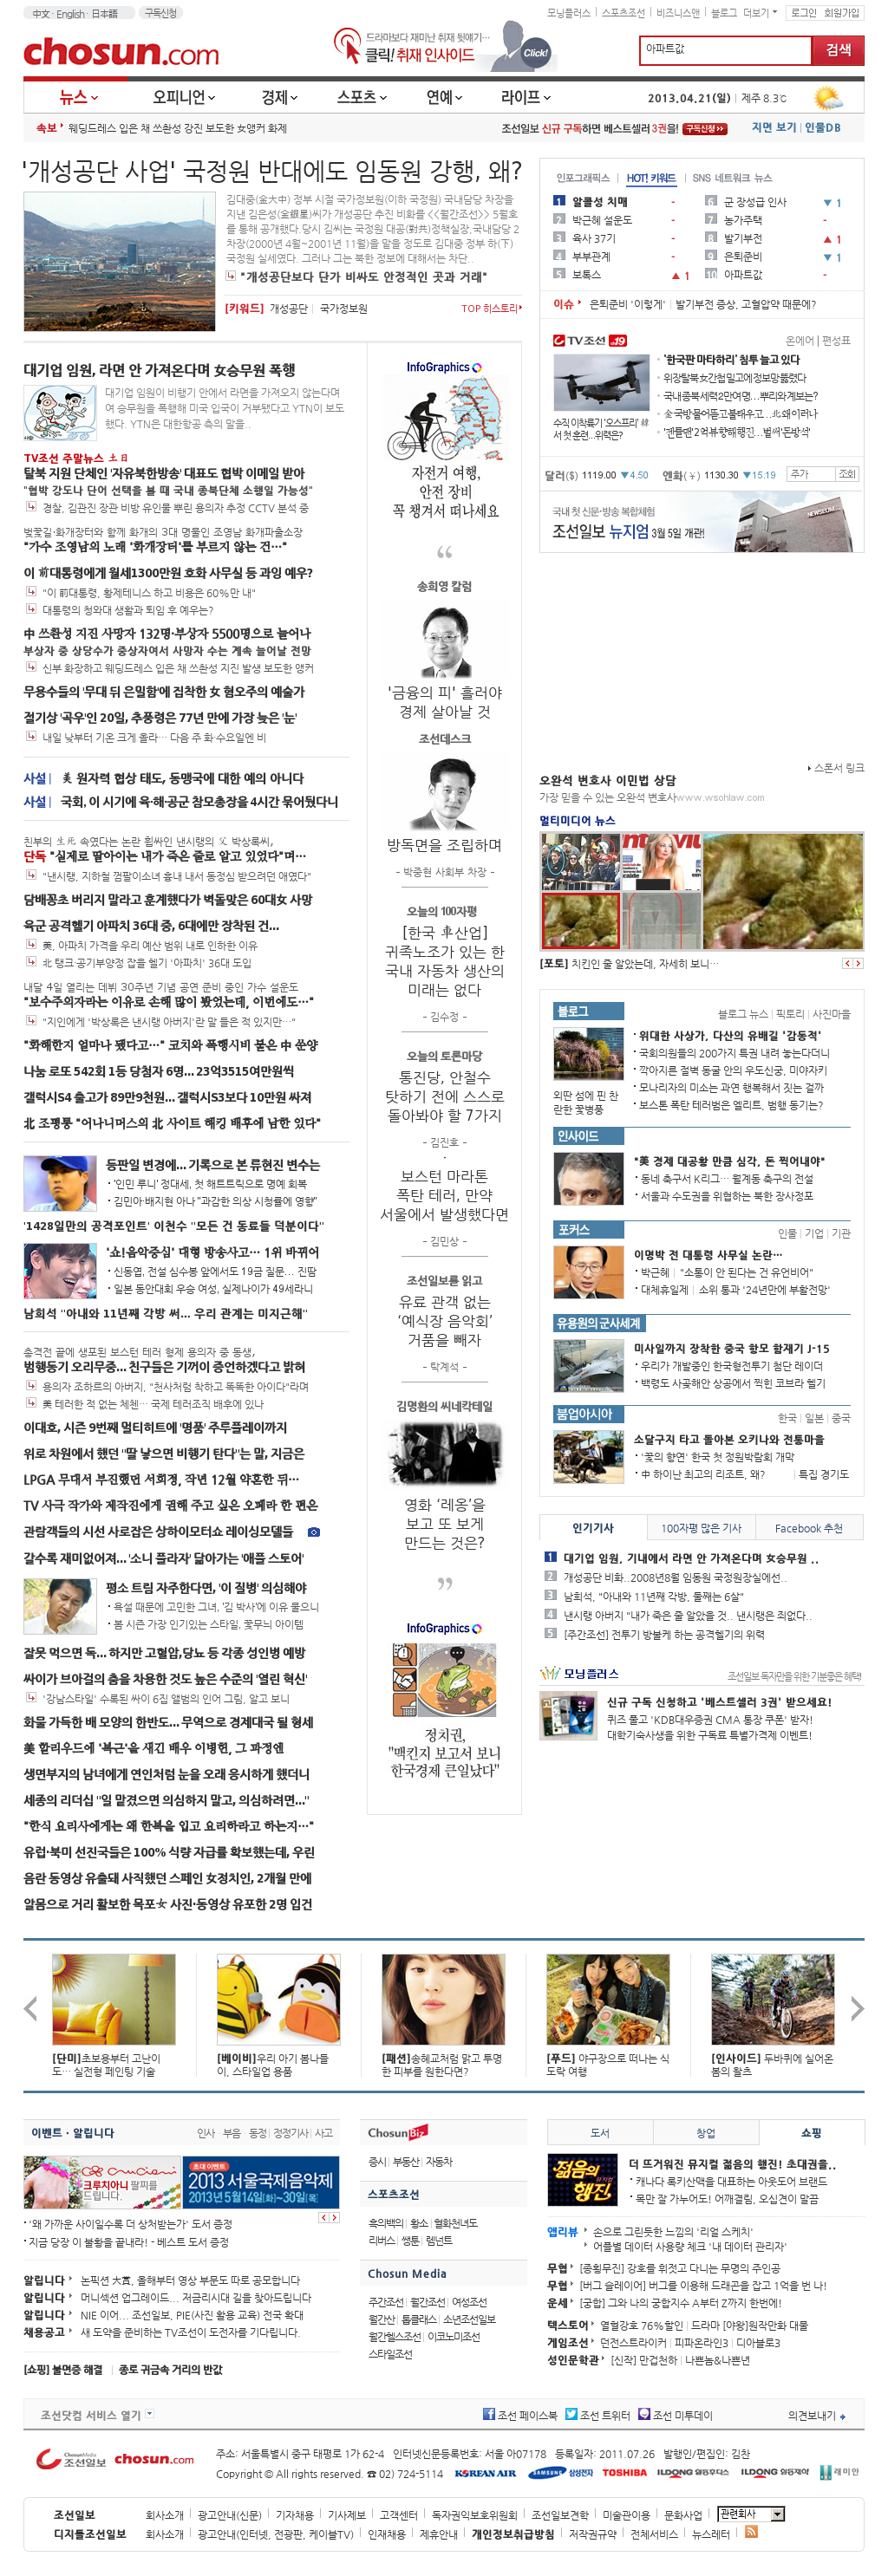 chosun.com at Saturday April 20, 2013, 9:03 p.m. UTC